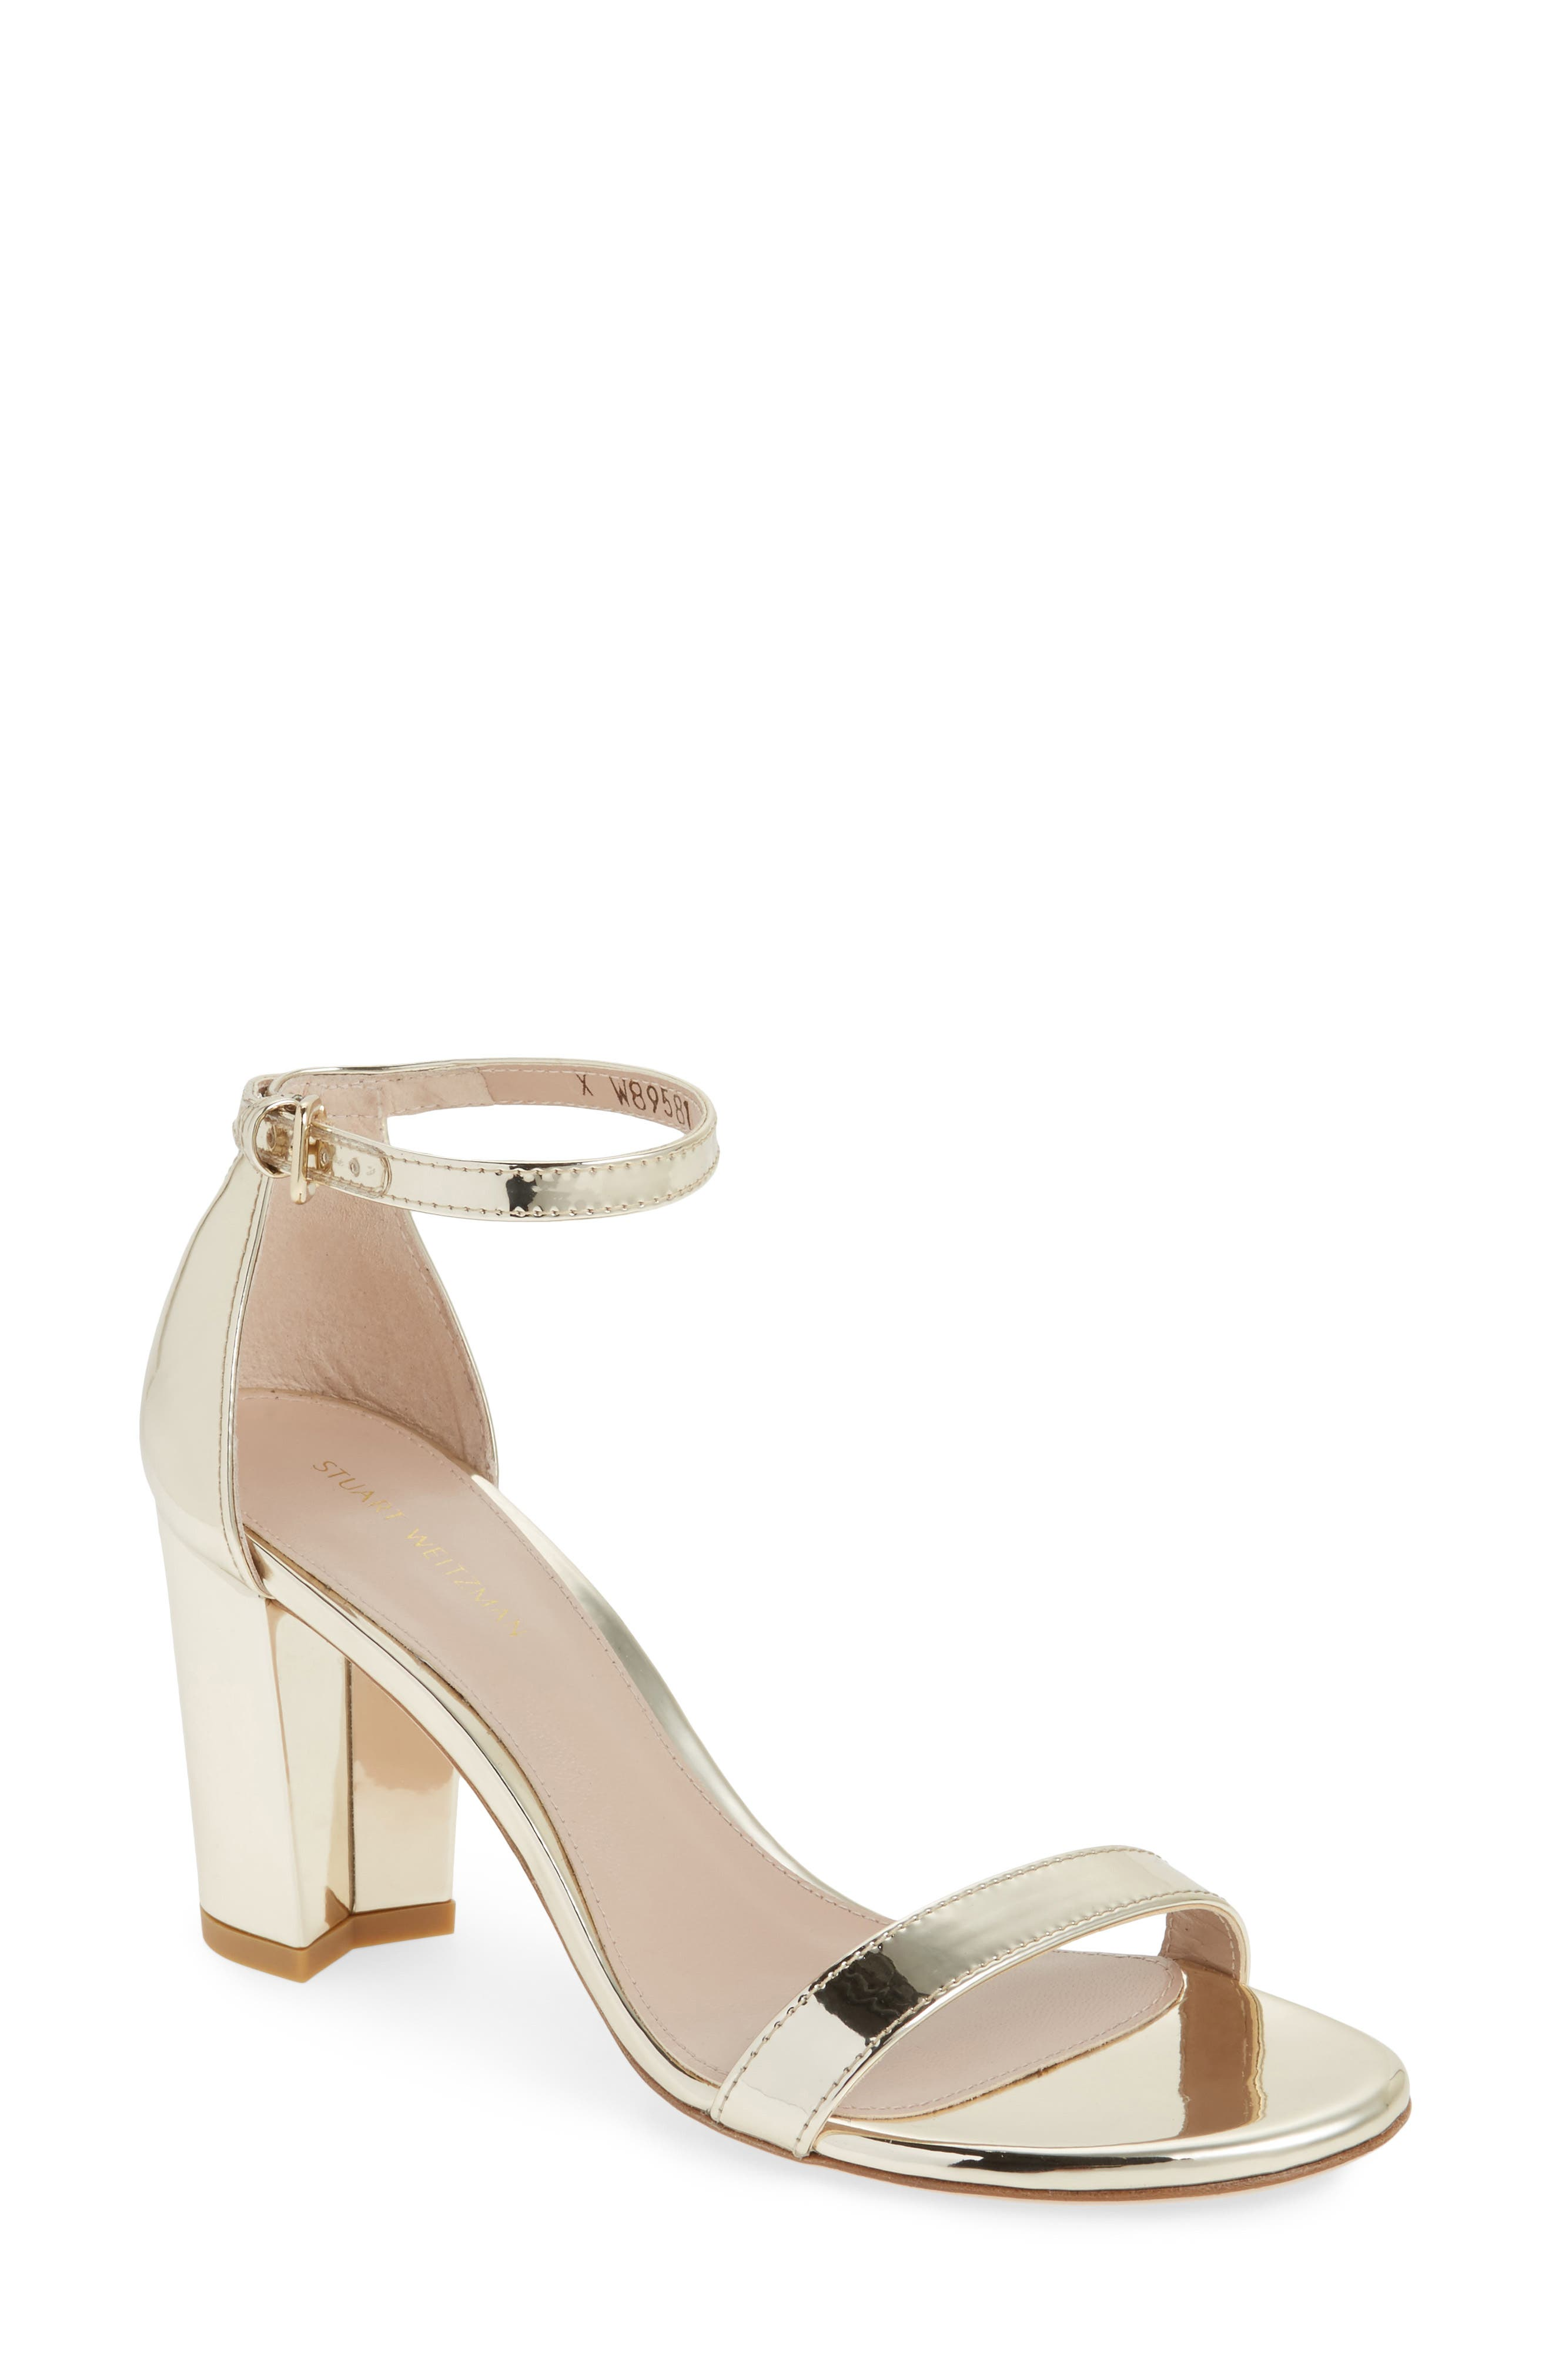 NearlyNude Ankle Strap Sandal,                             Main thumbnail 9, color,